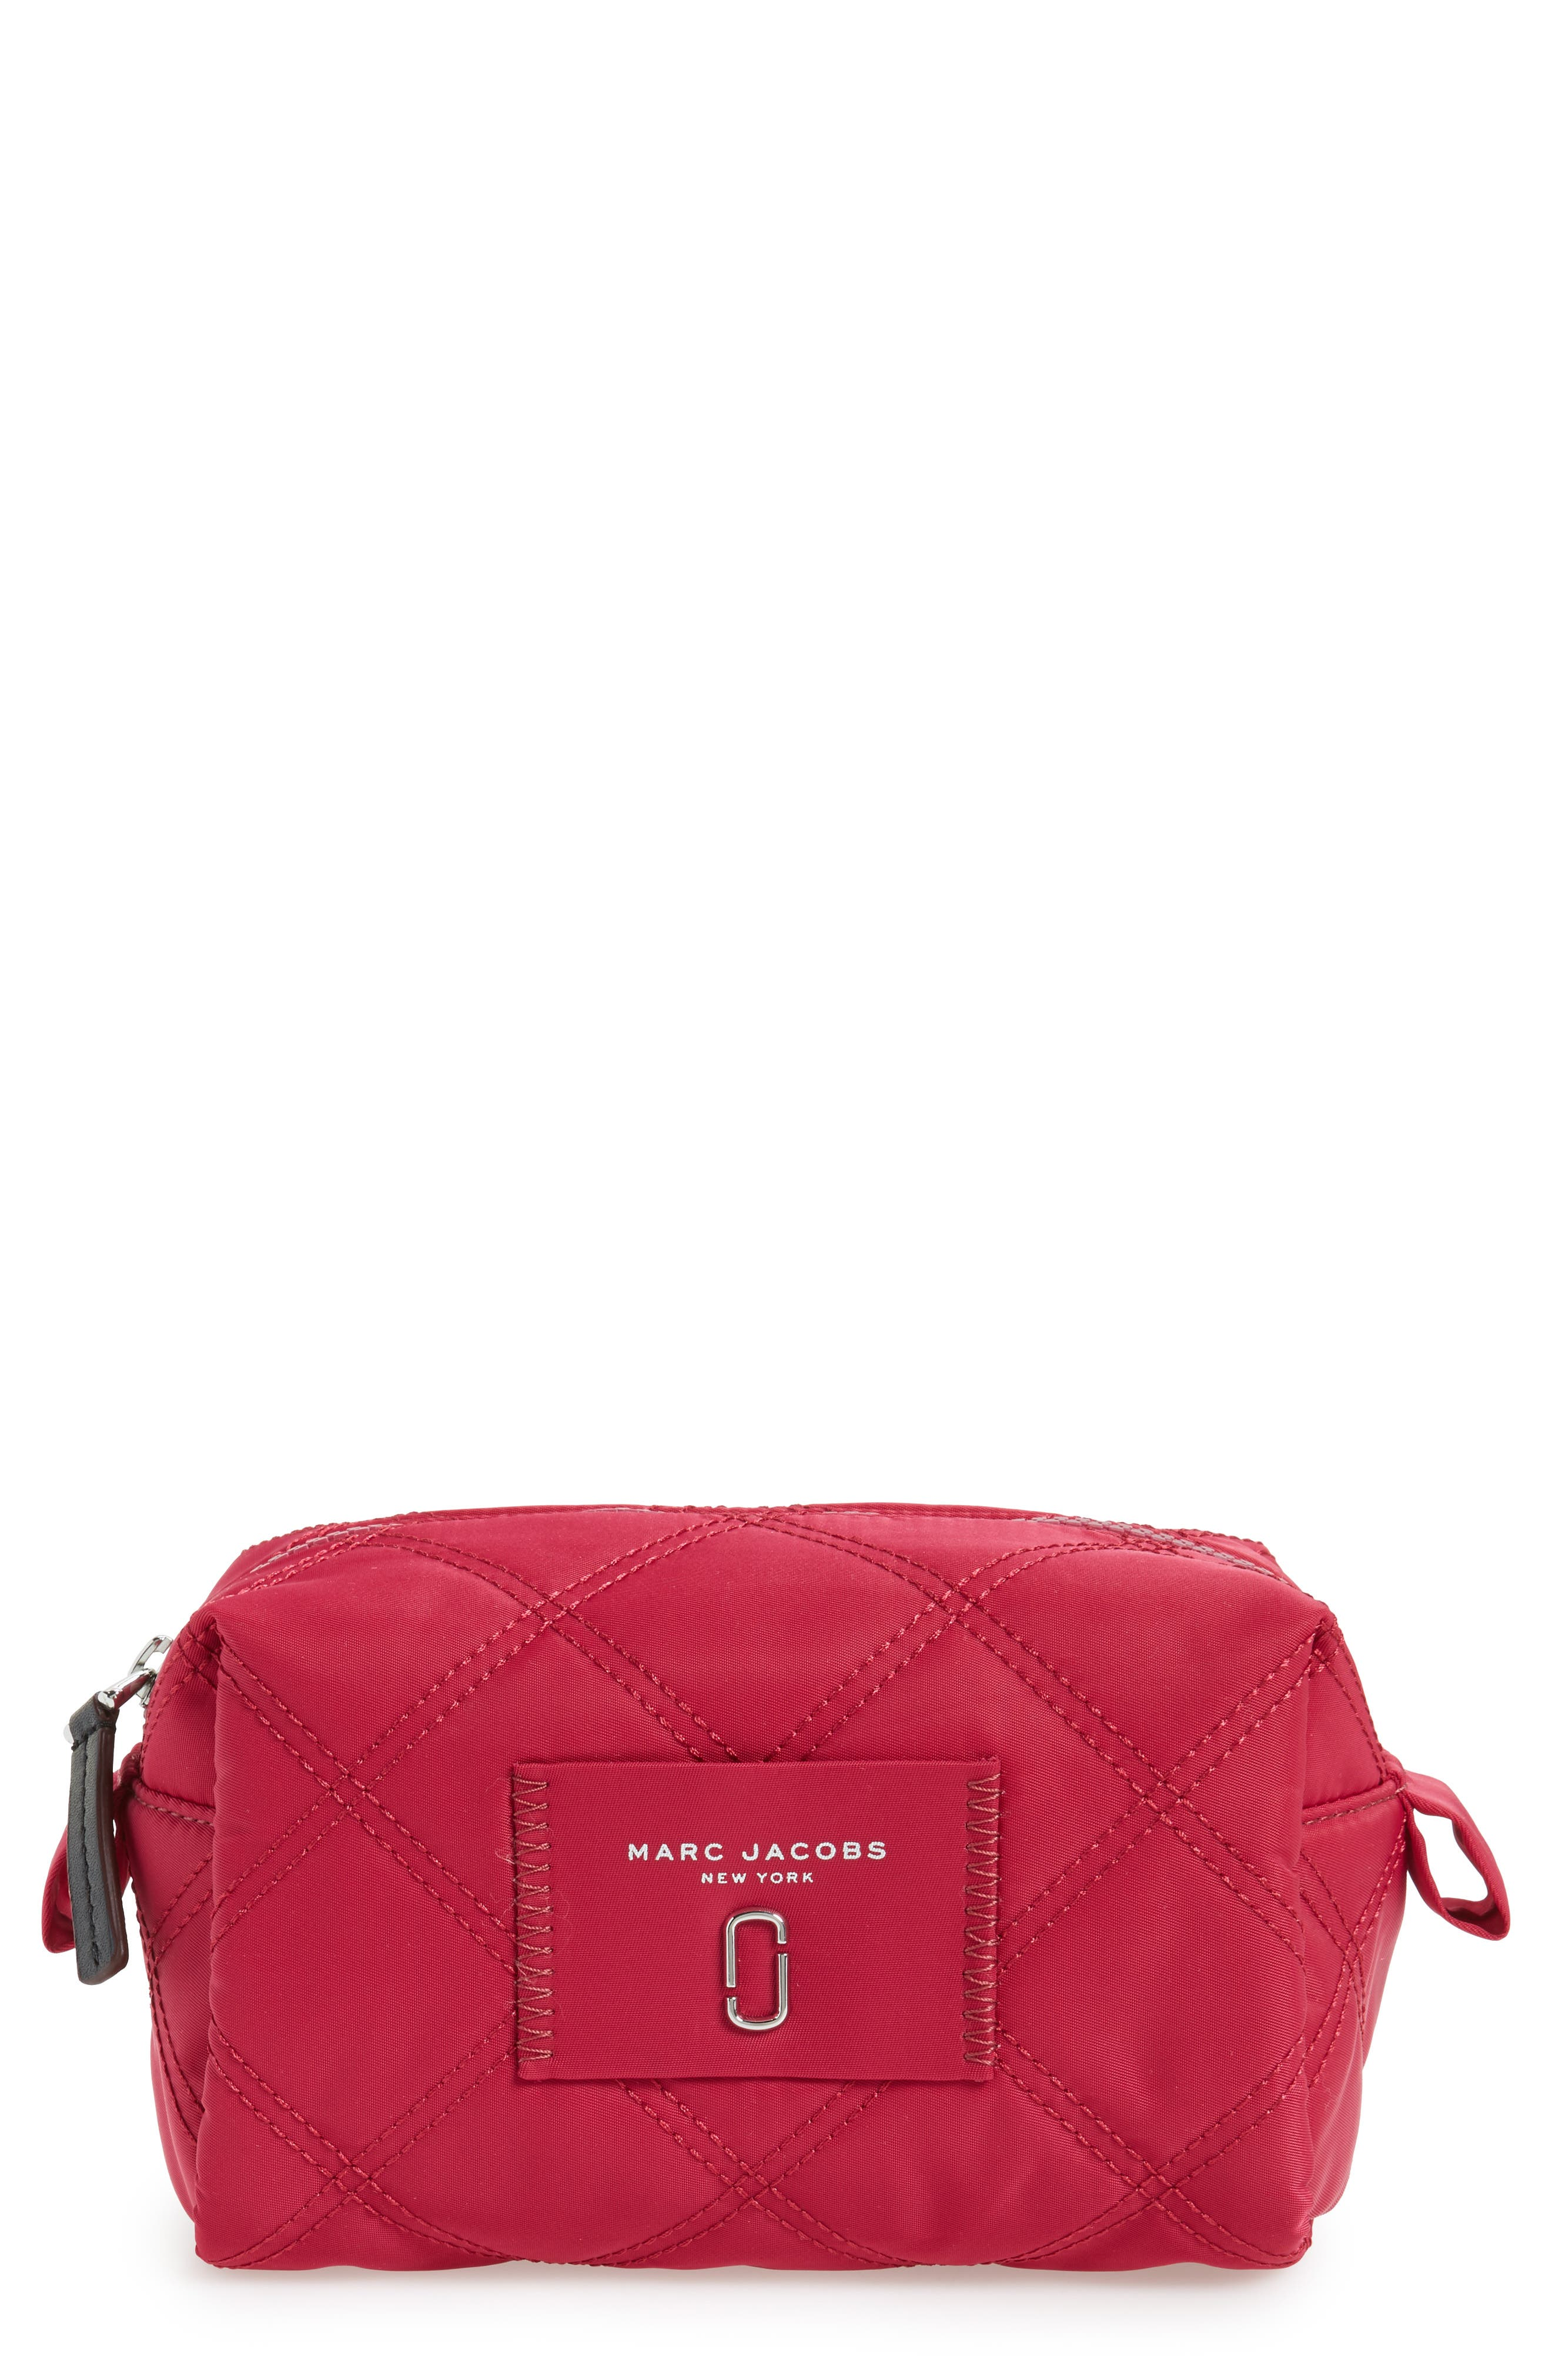 MARC JACOBS Large Knot Cosmetics Case